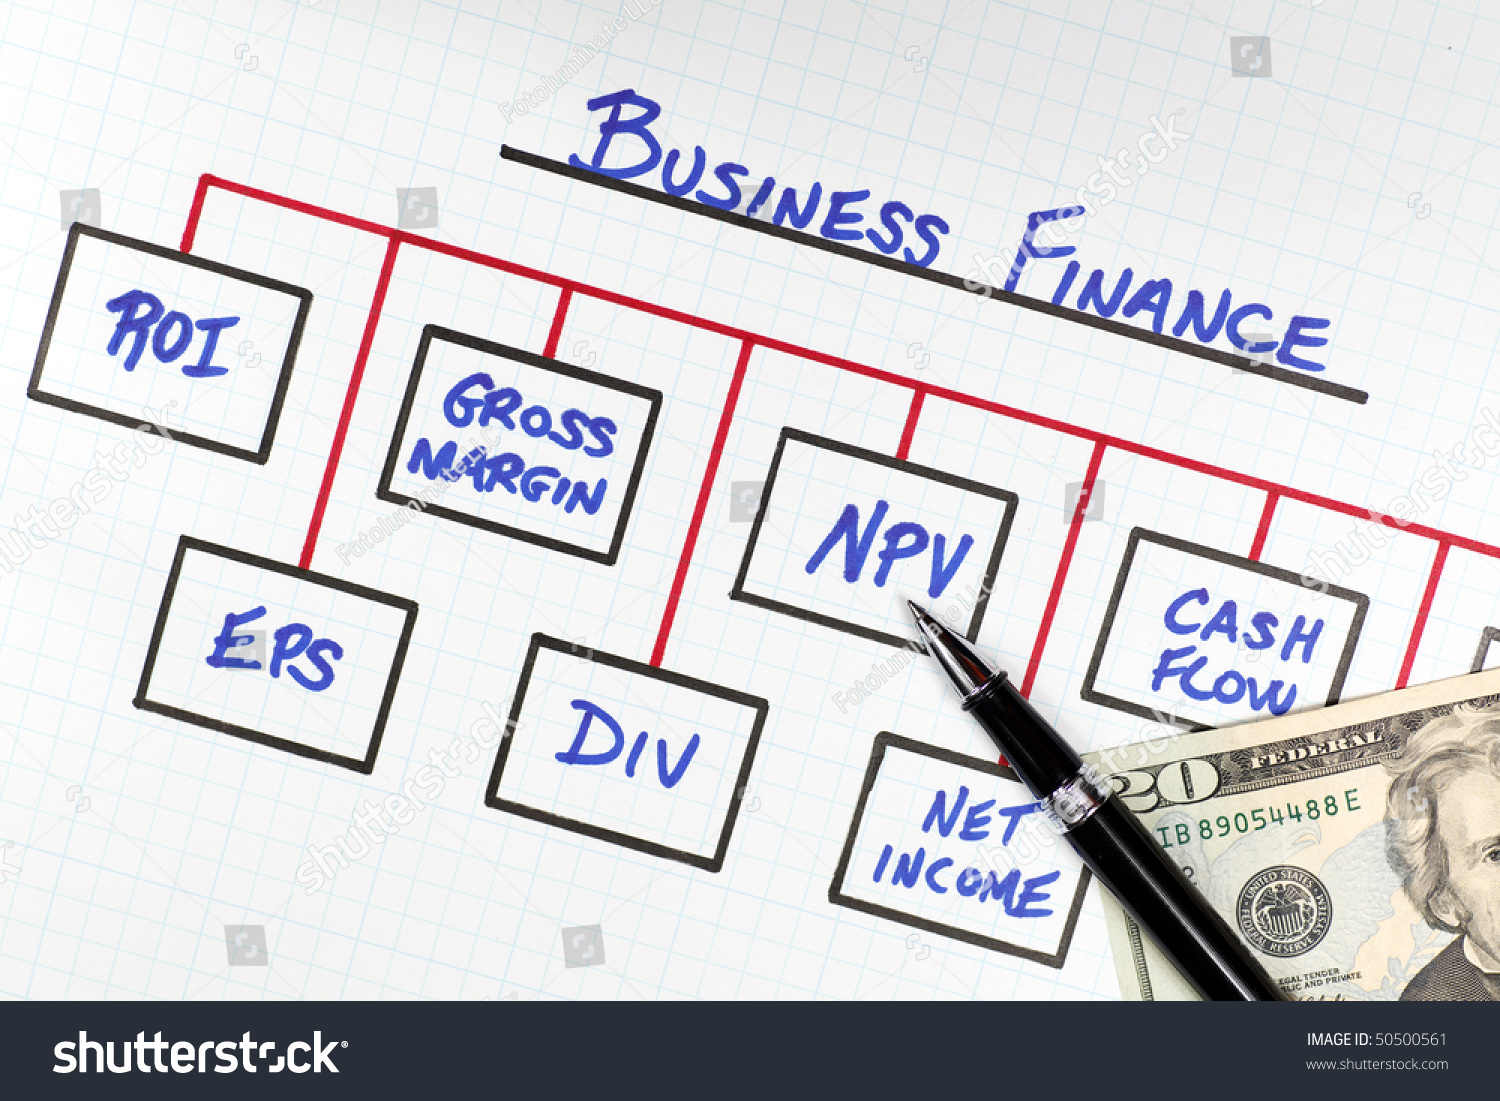 hight resolution of business finance diagram depicting common financial terms